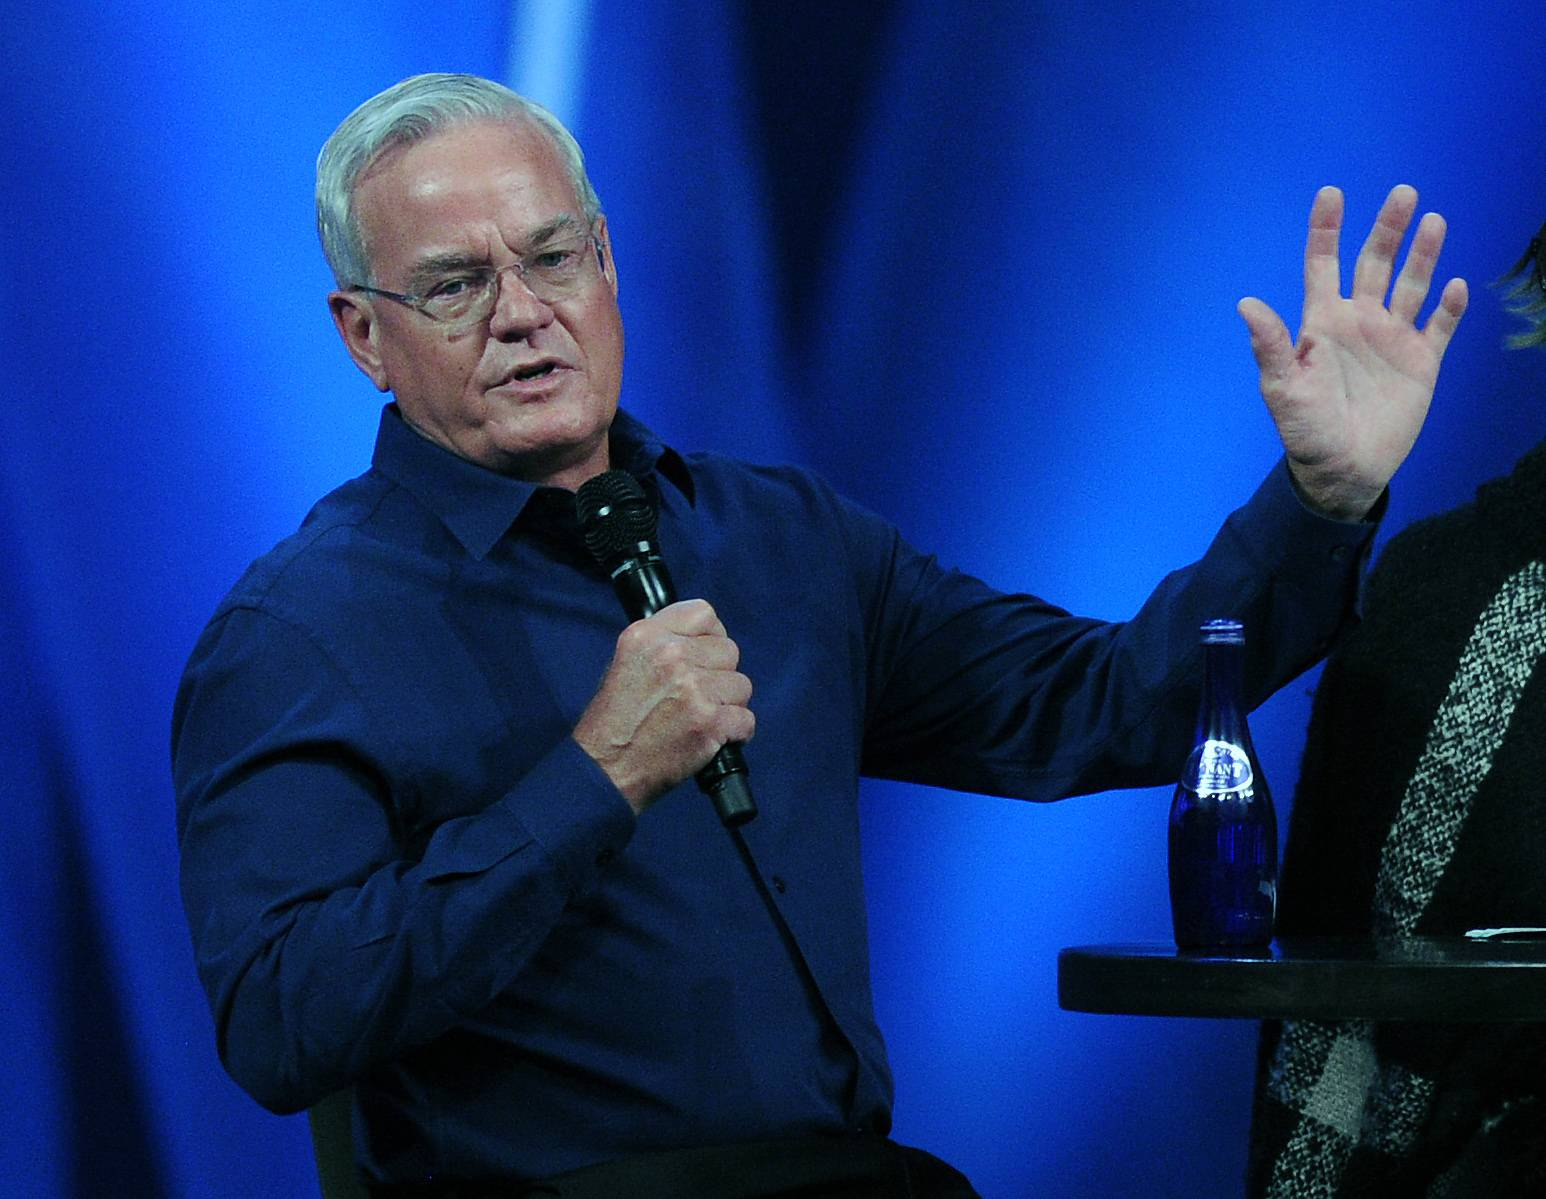 Willow Creek elders: 'We are sorry. ... Some of (Bill Hybels') choices were inappropriate'